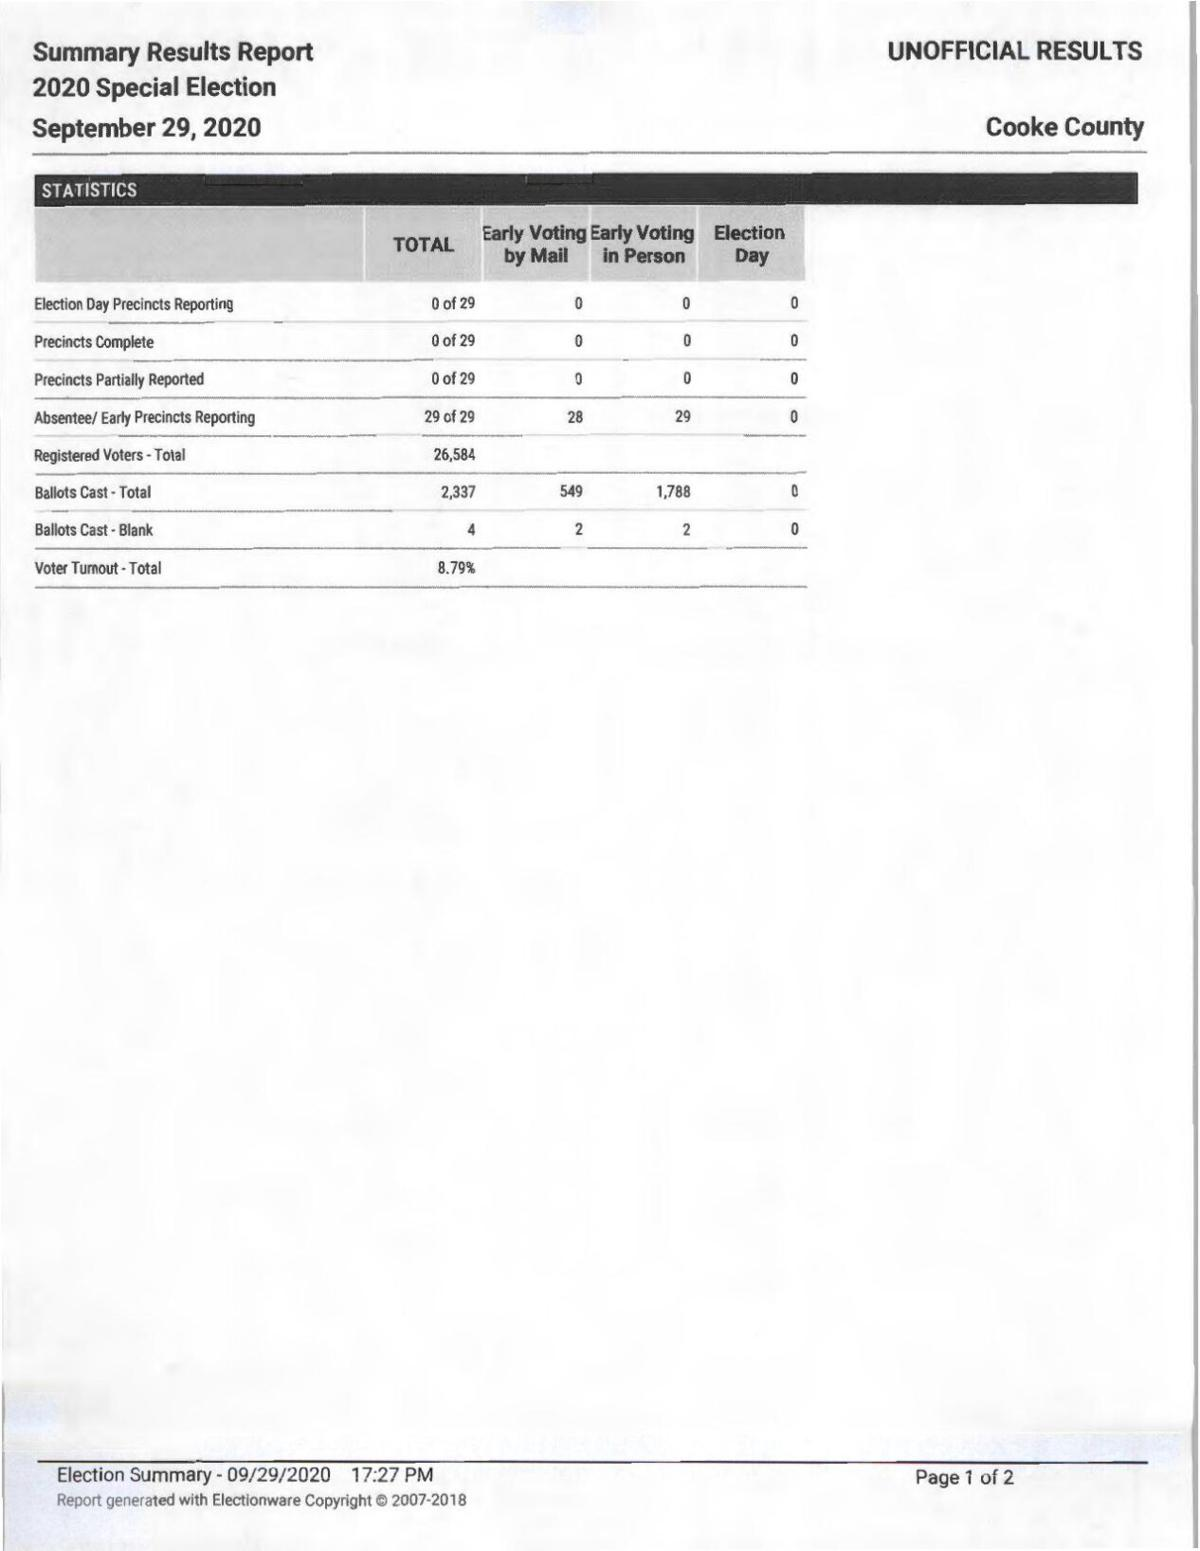 Special Election early voting results for Cooke County